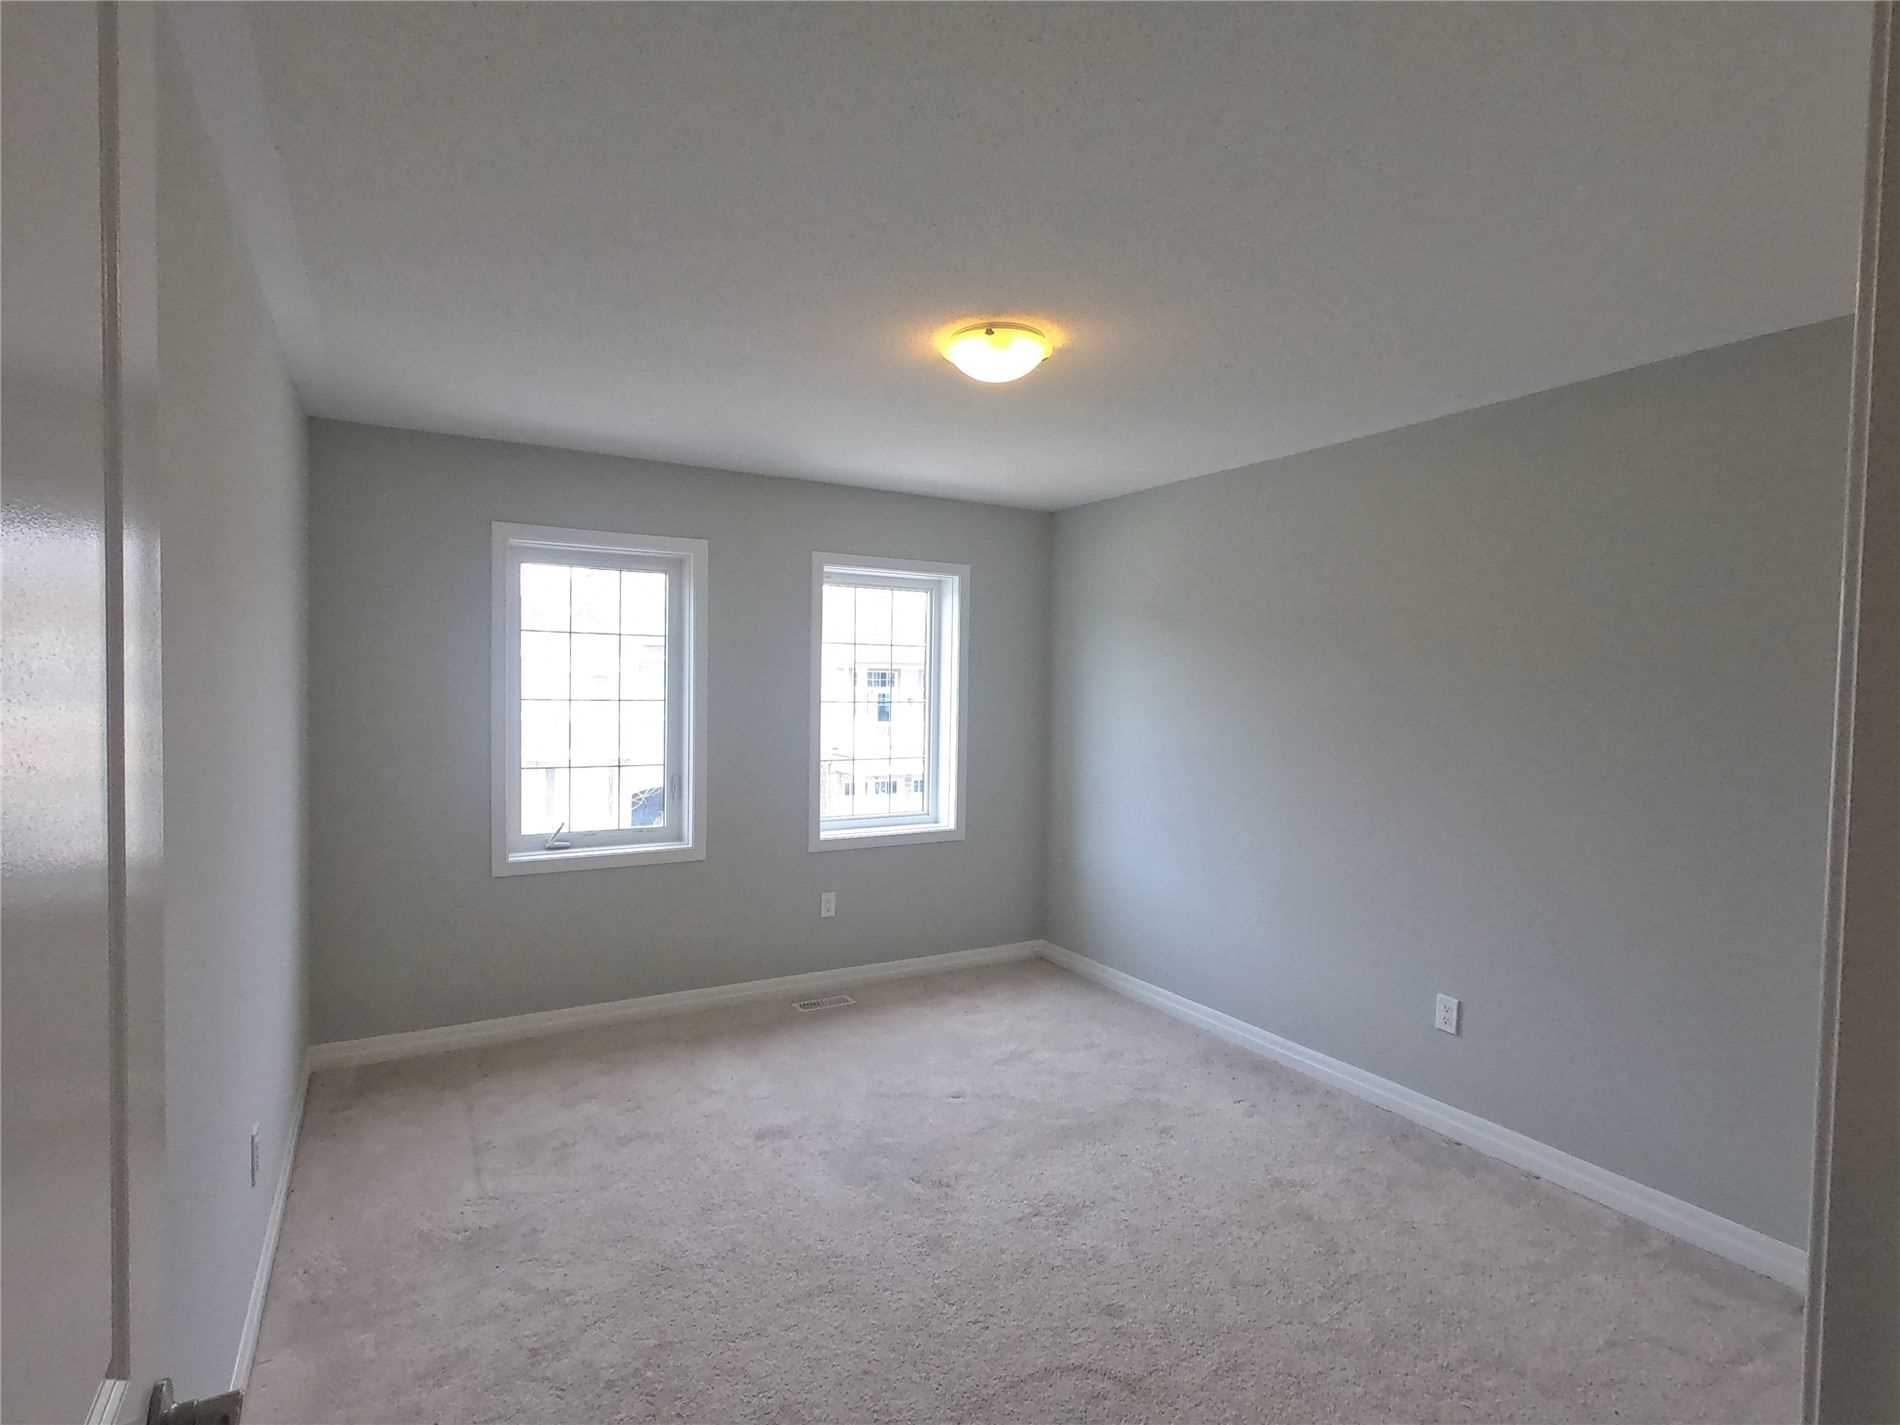 Listing W5218644 - Thumbmnail Photo # 13